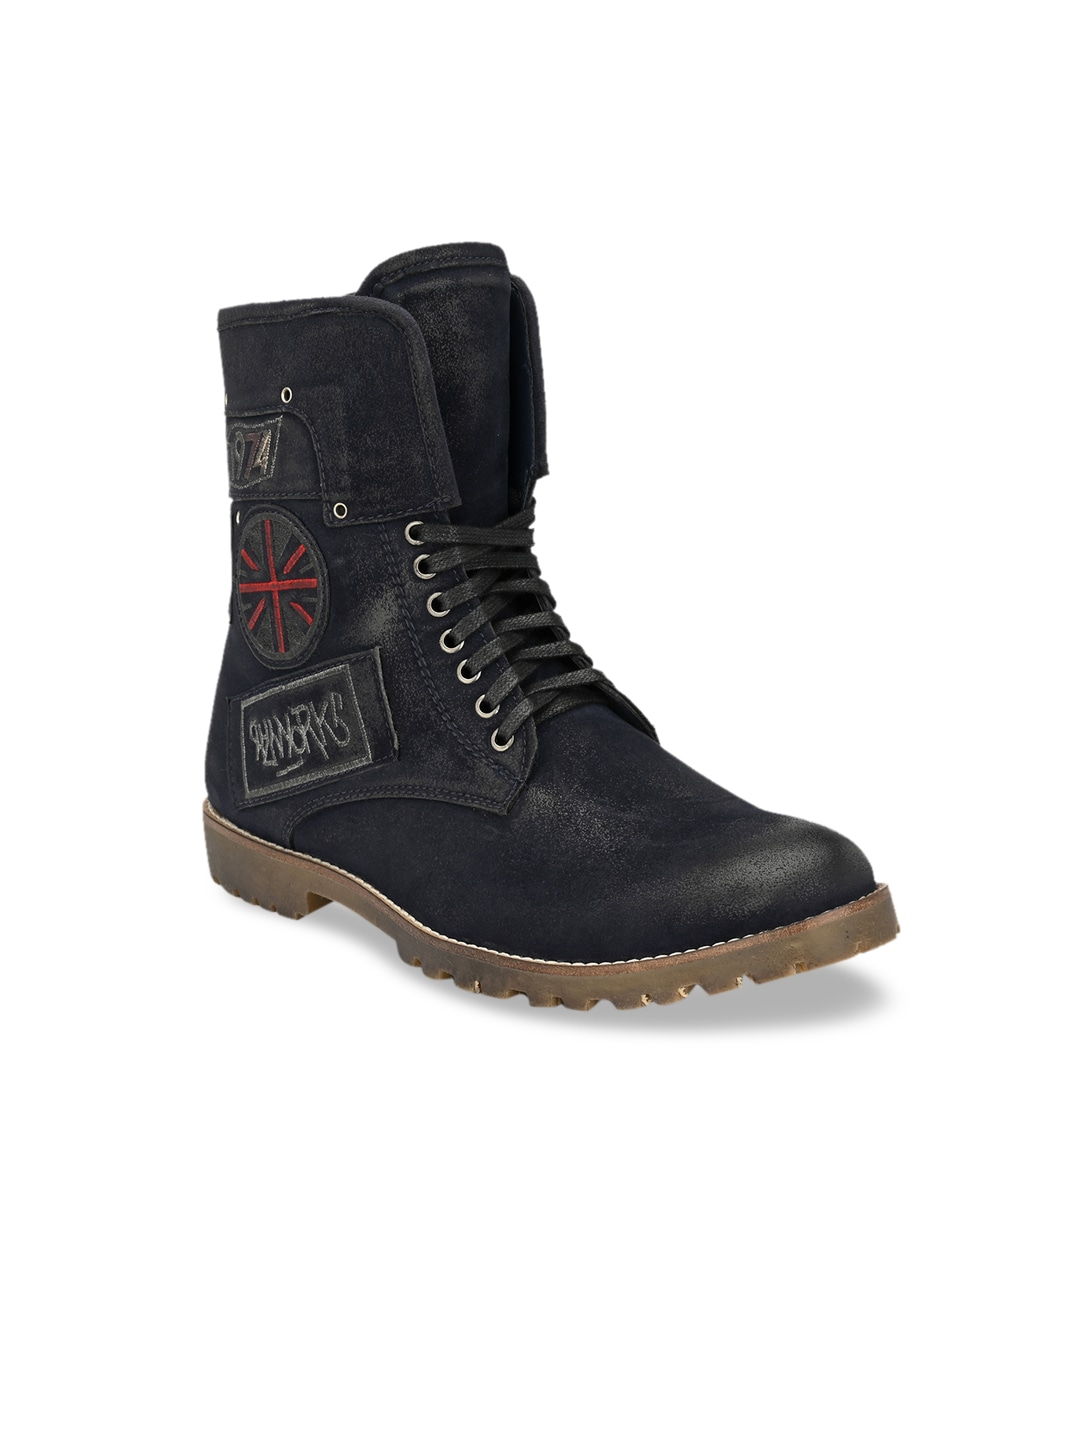 Navy Blue Solid Synthetic Leather High-Top Flat Boots